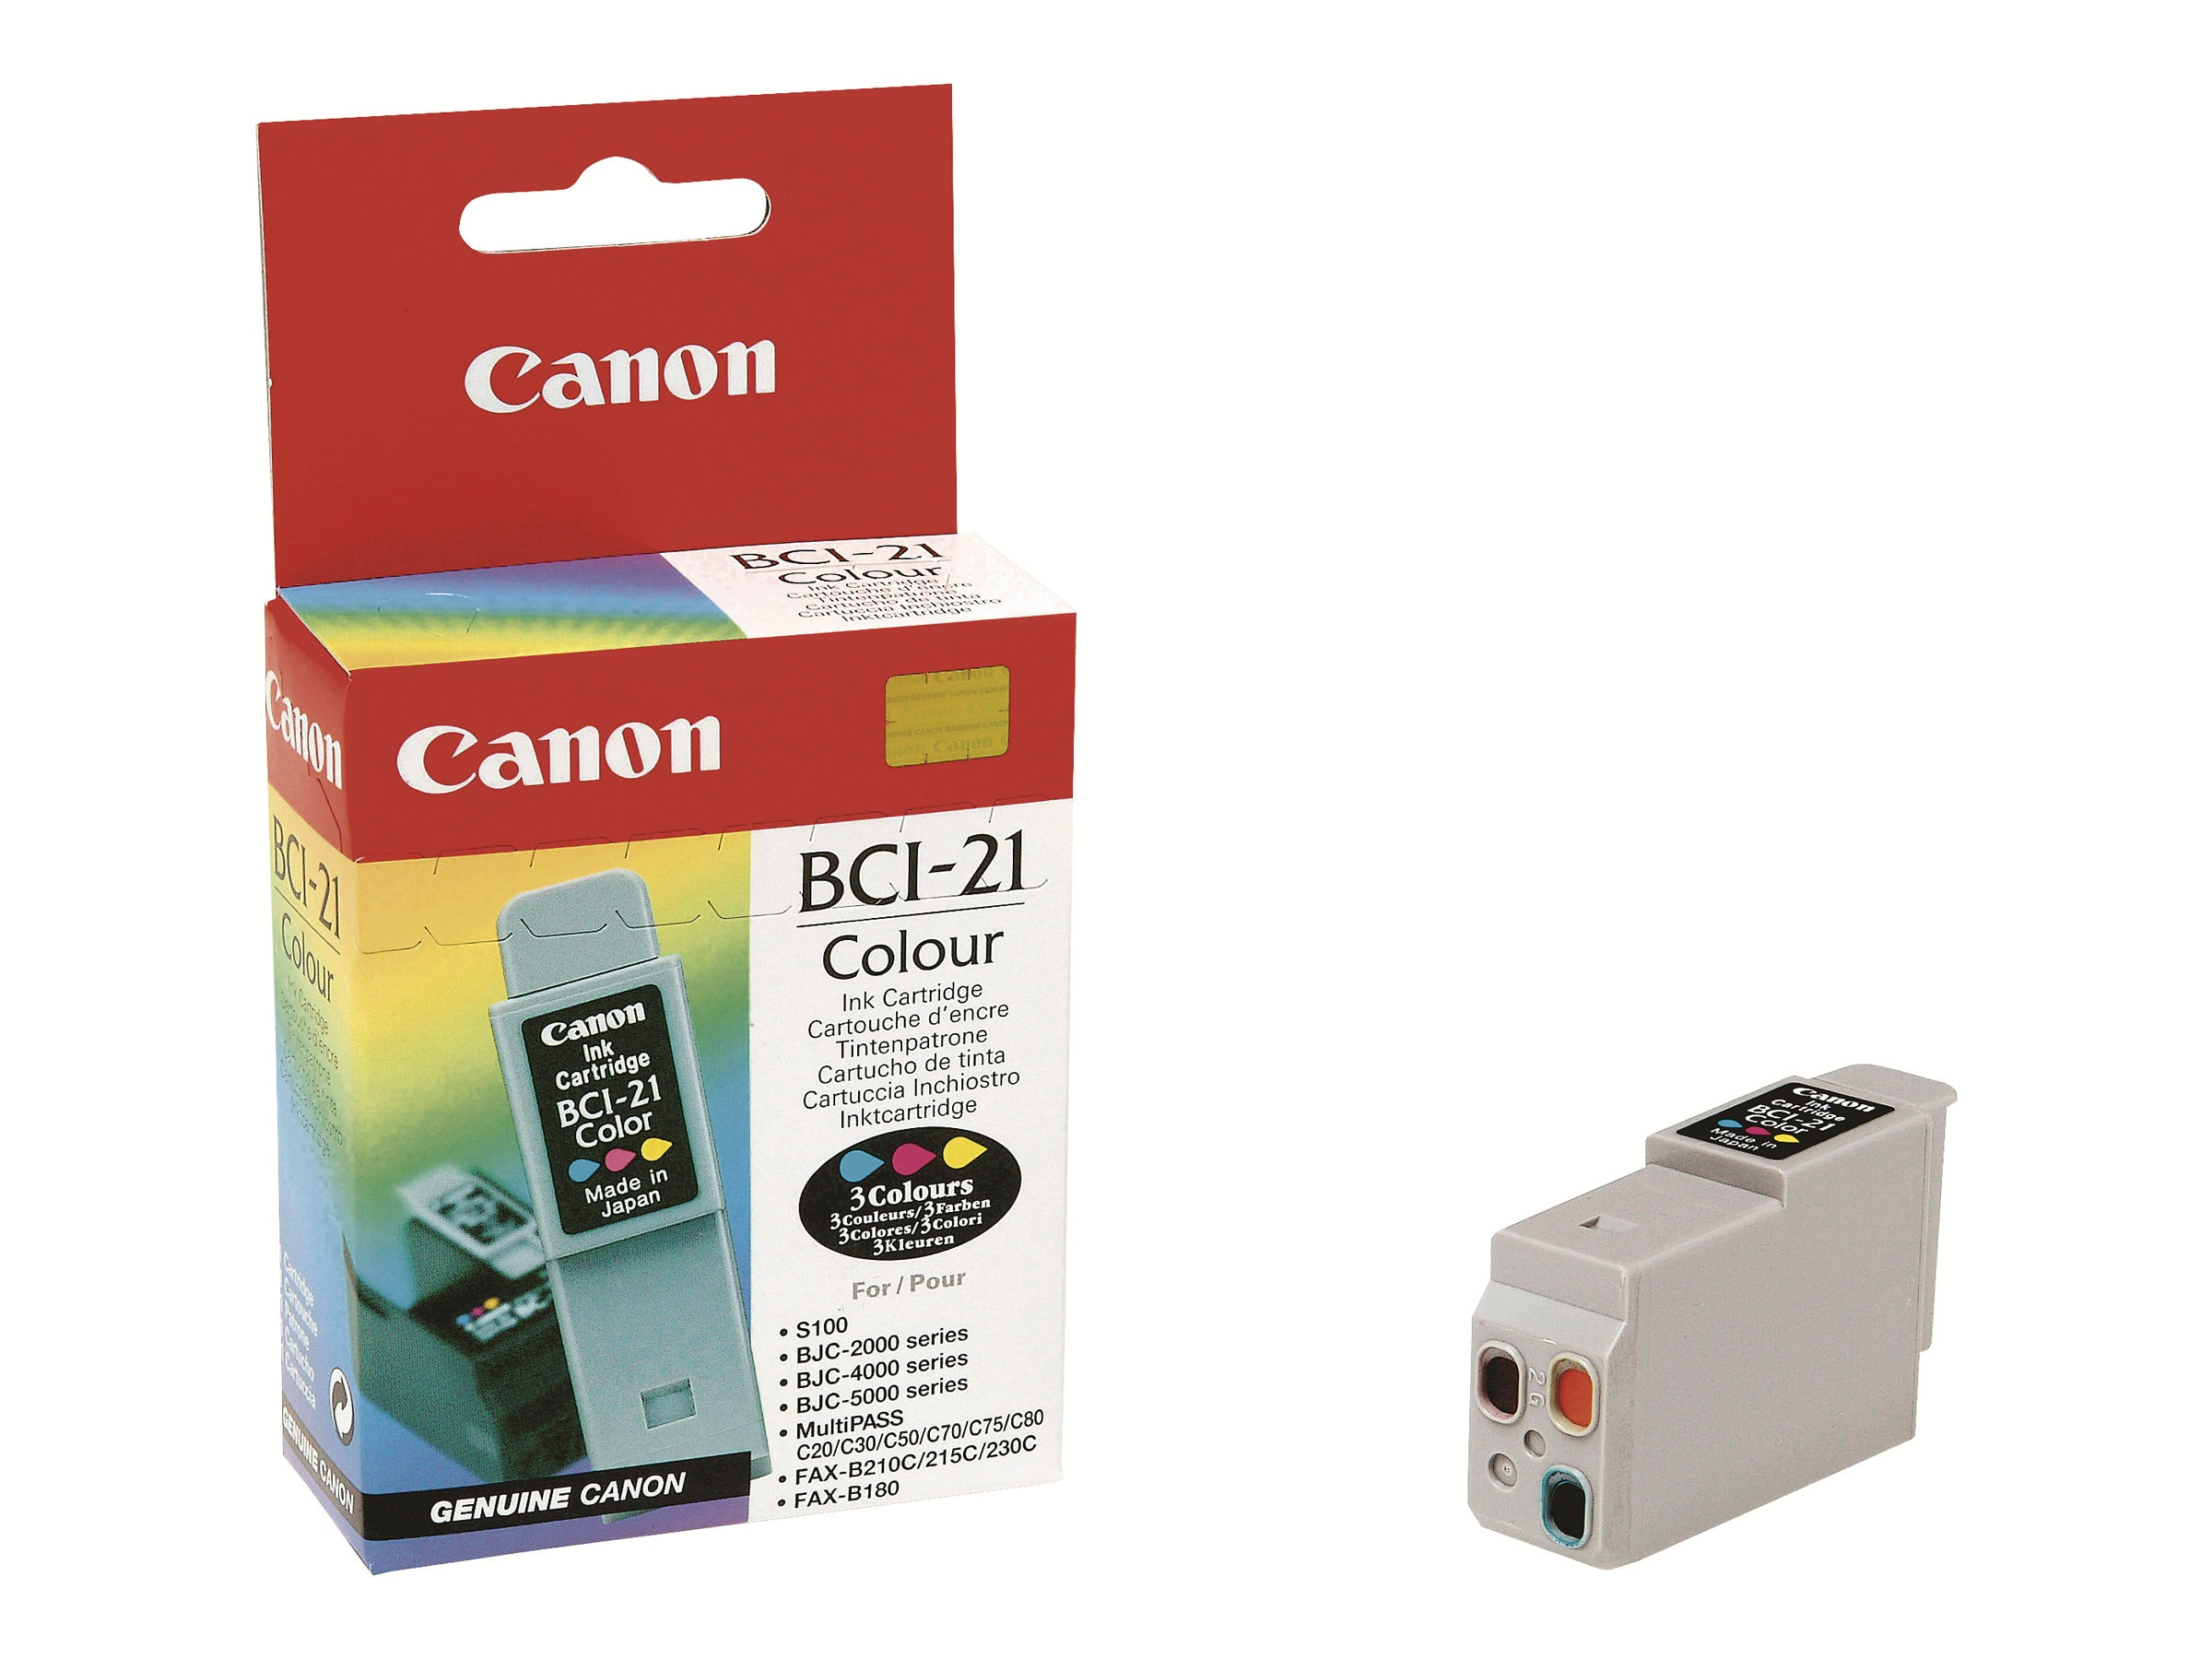 Canon Color BCI-21 Ink Tank for BJC-4000 BJC-5000 MultiPass, 0955A003, 20308, Ink Cartridges & Ink Refill Kits